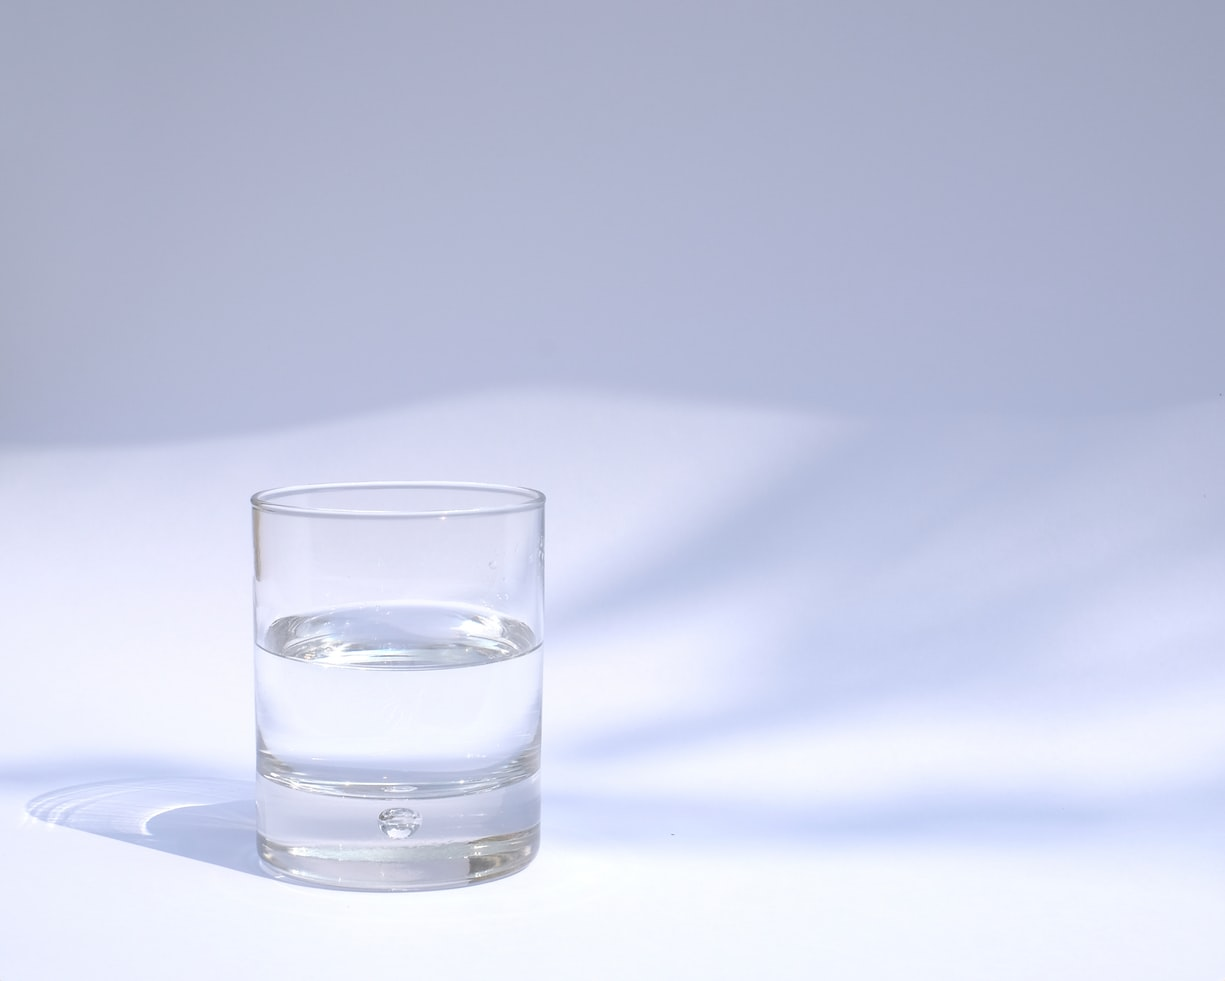 HYDRATING FOR LIFE AND PERFORMANCE